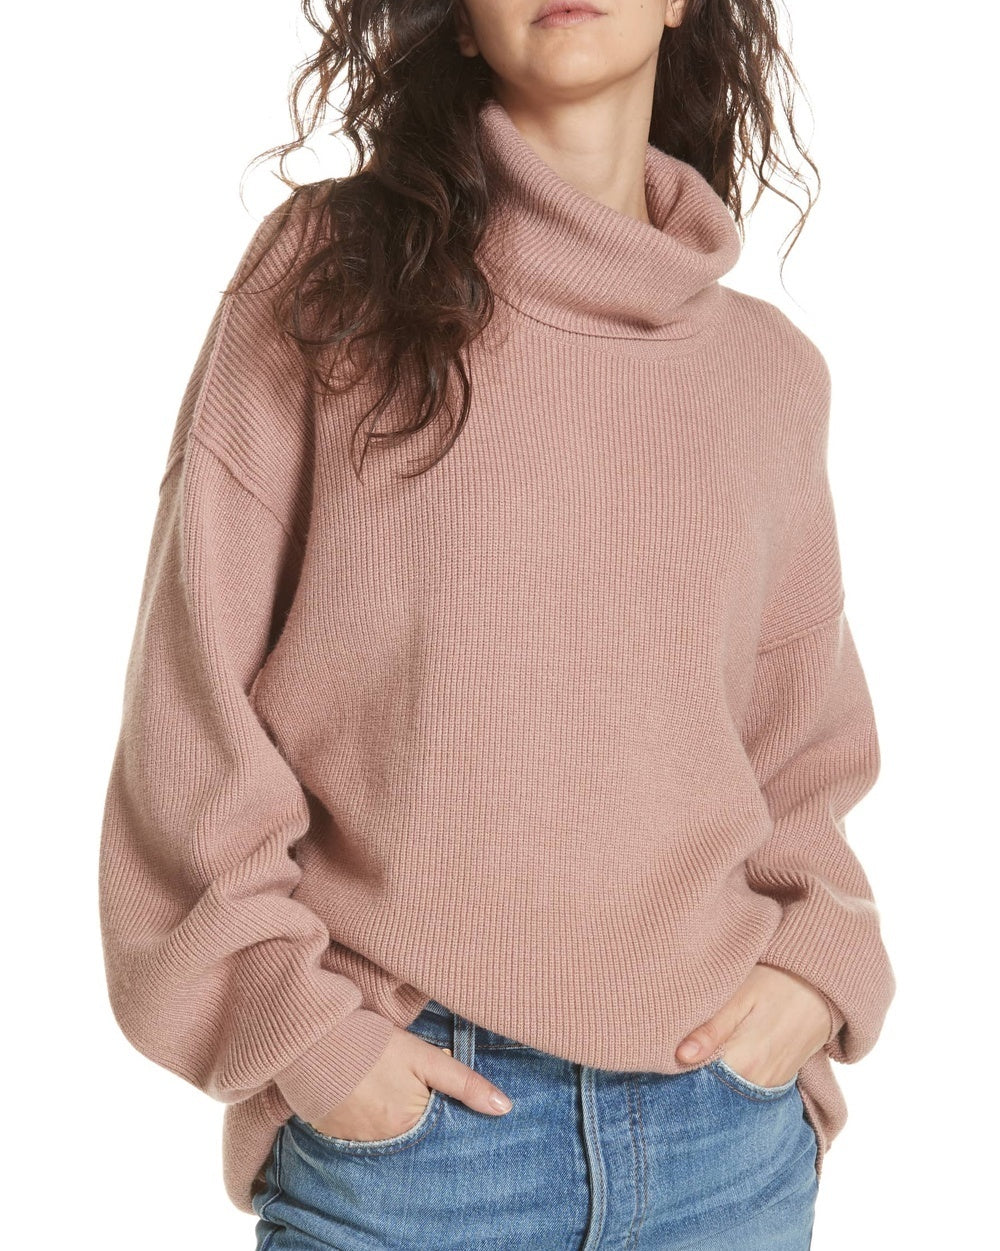 bab79e2d6f23 Free People Softly Structured Knit Tunic Sweater - The Shopping Bag